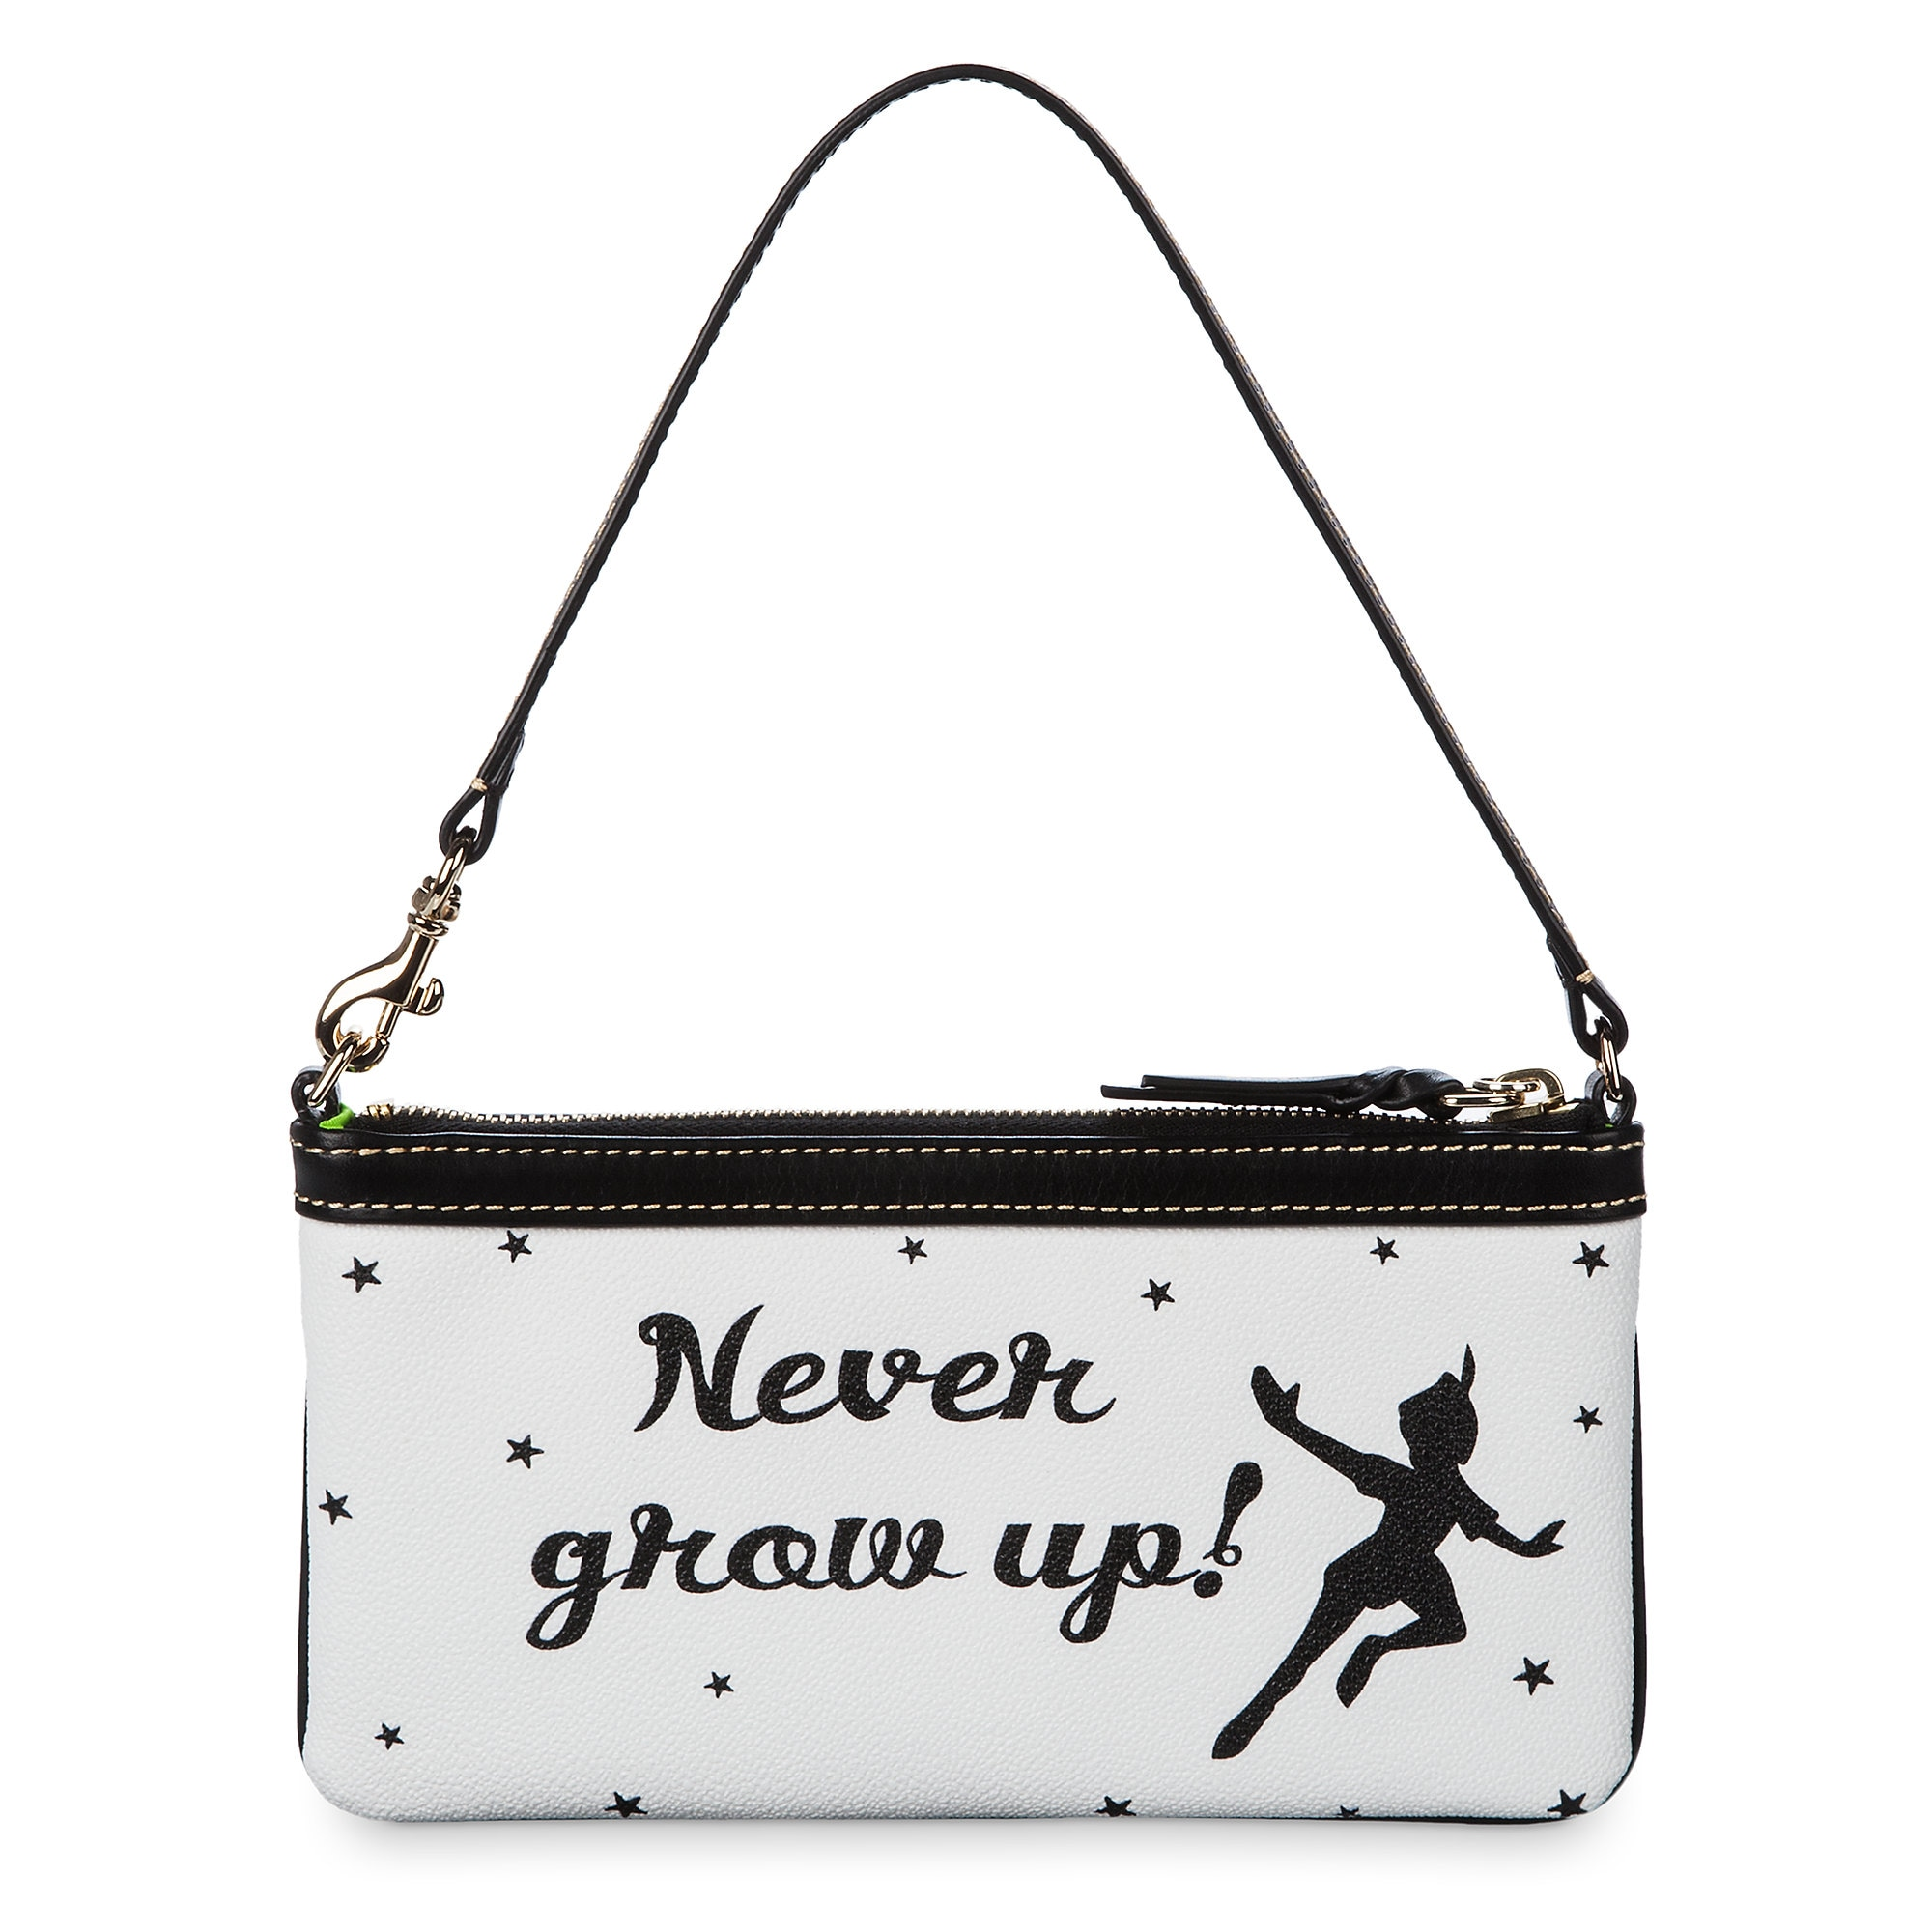 Peter Pan Wristlet Bag - Dooney & Bourke